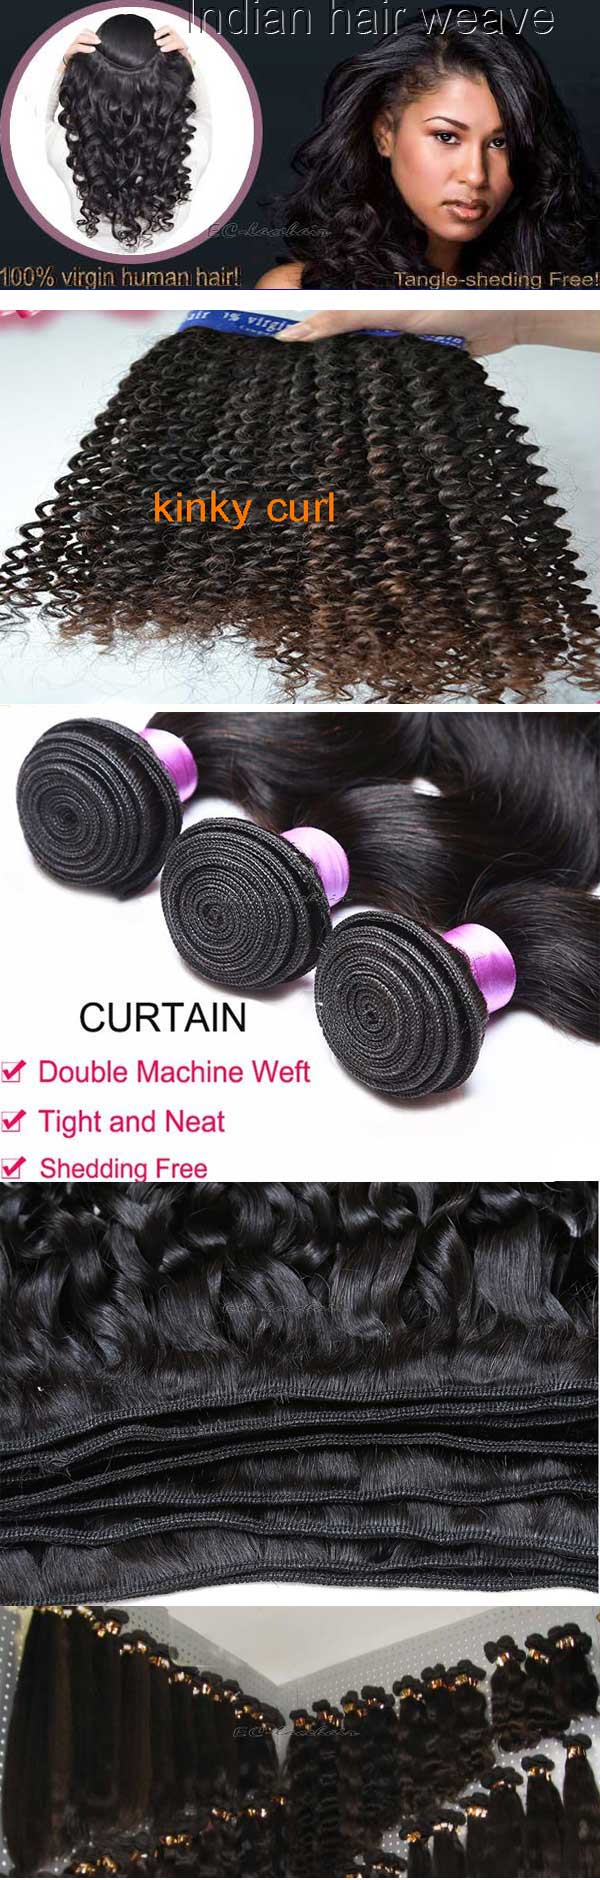 kinky curl hair weaves